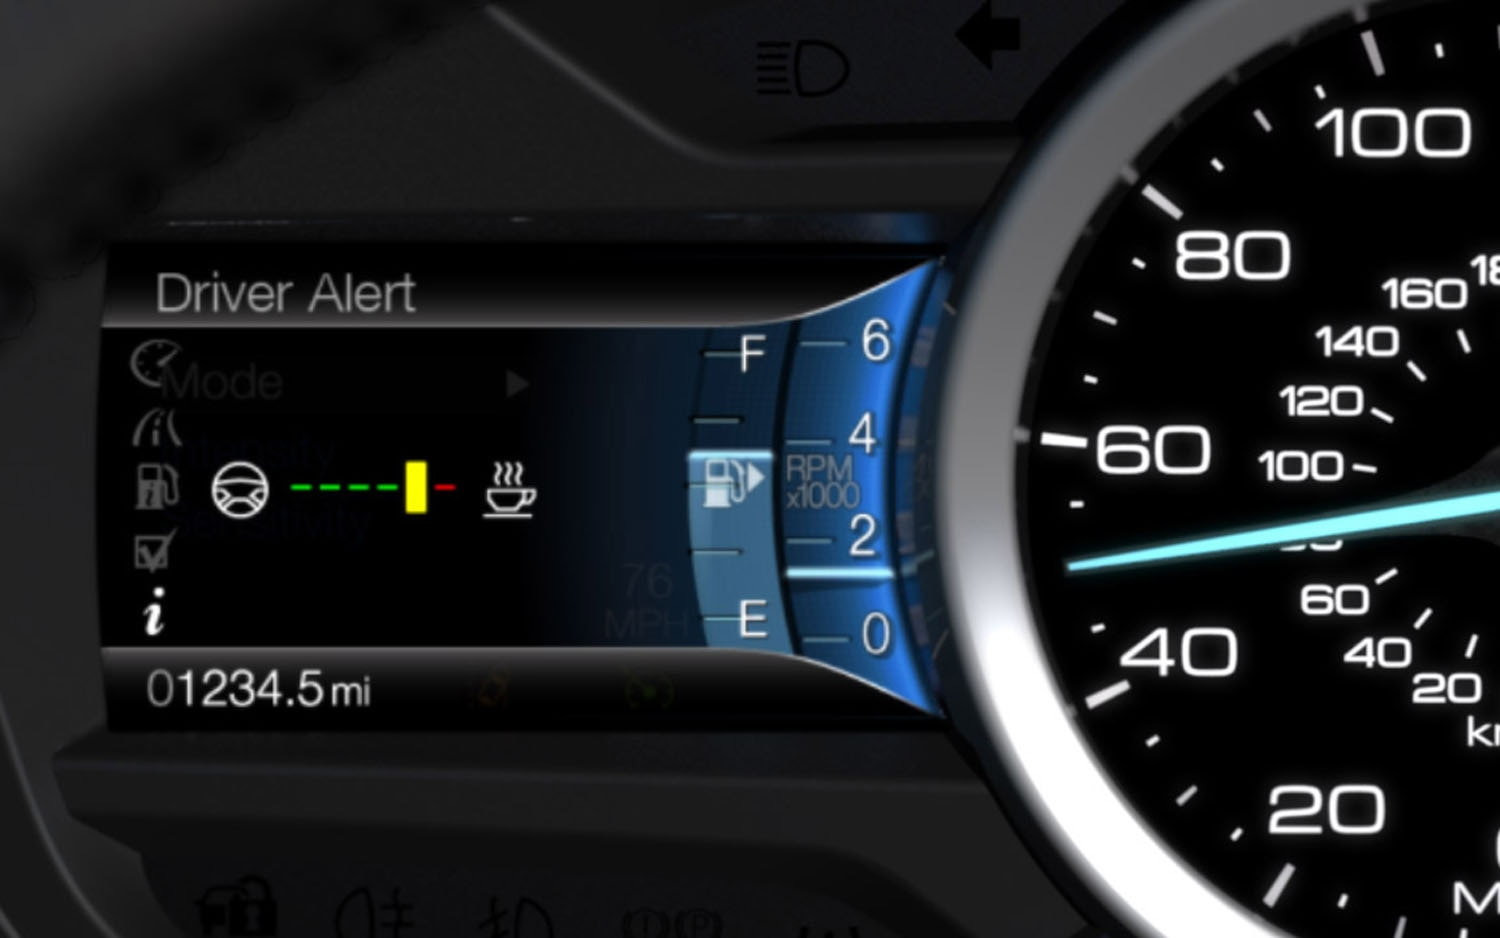 2013 Ford Fusion Driver Alert1